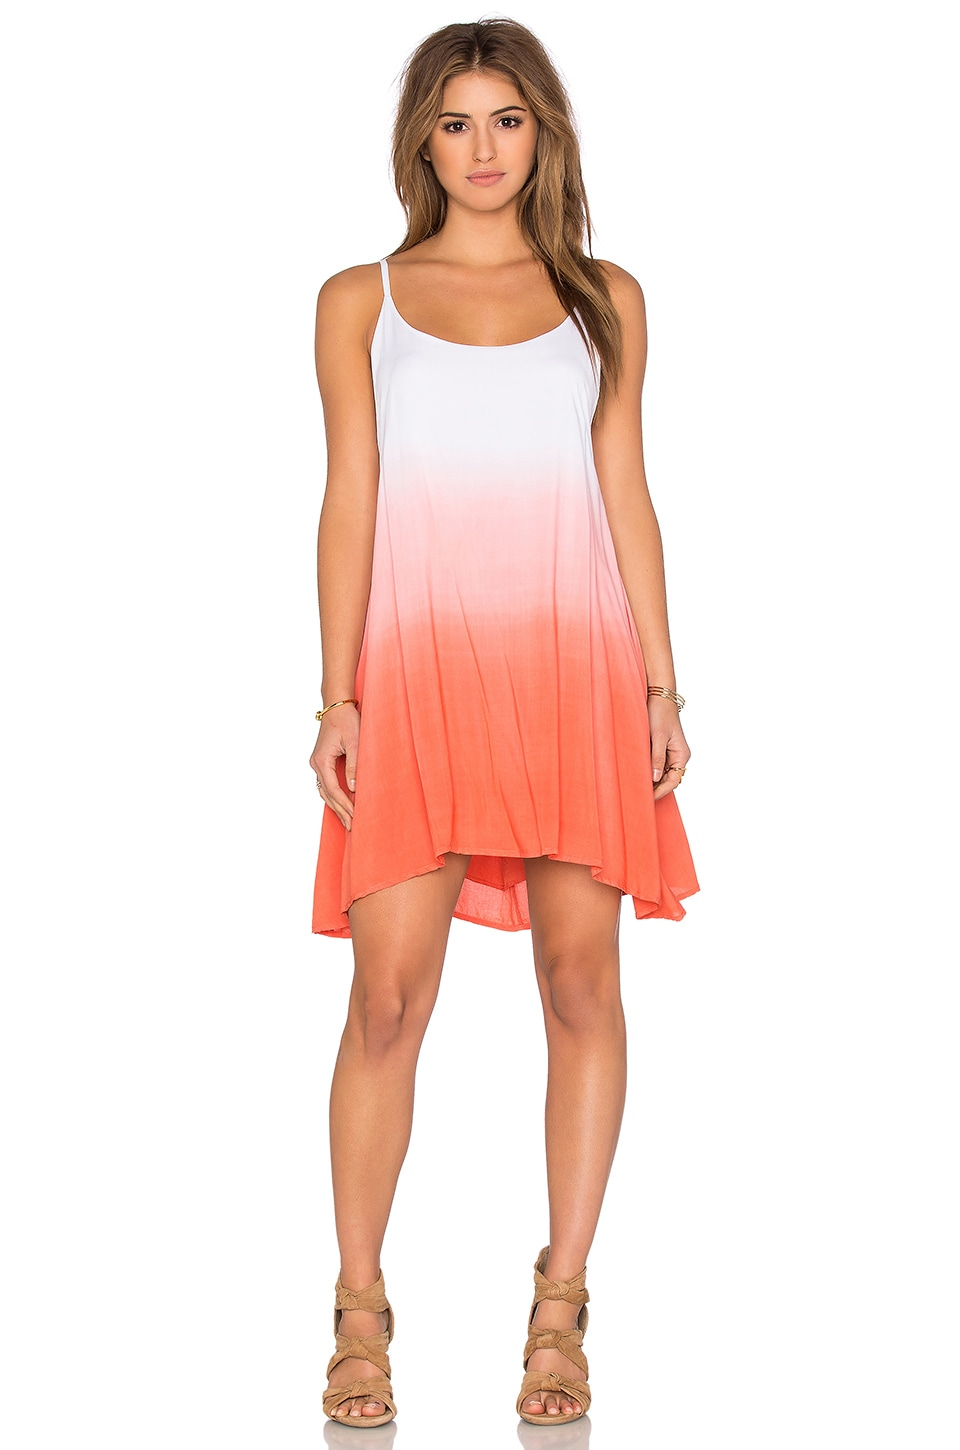 Bishop + Young Dip Dye Dress in Coral